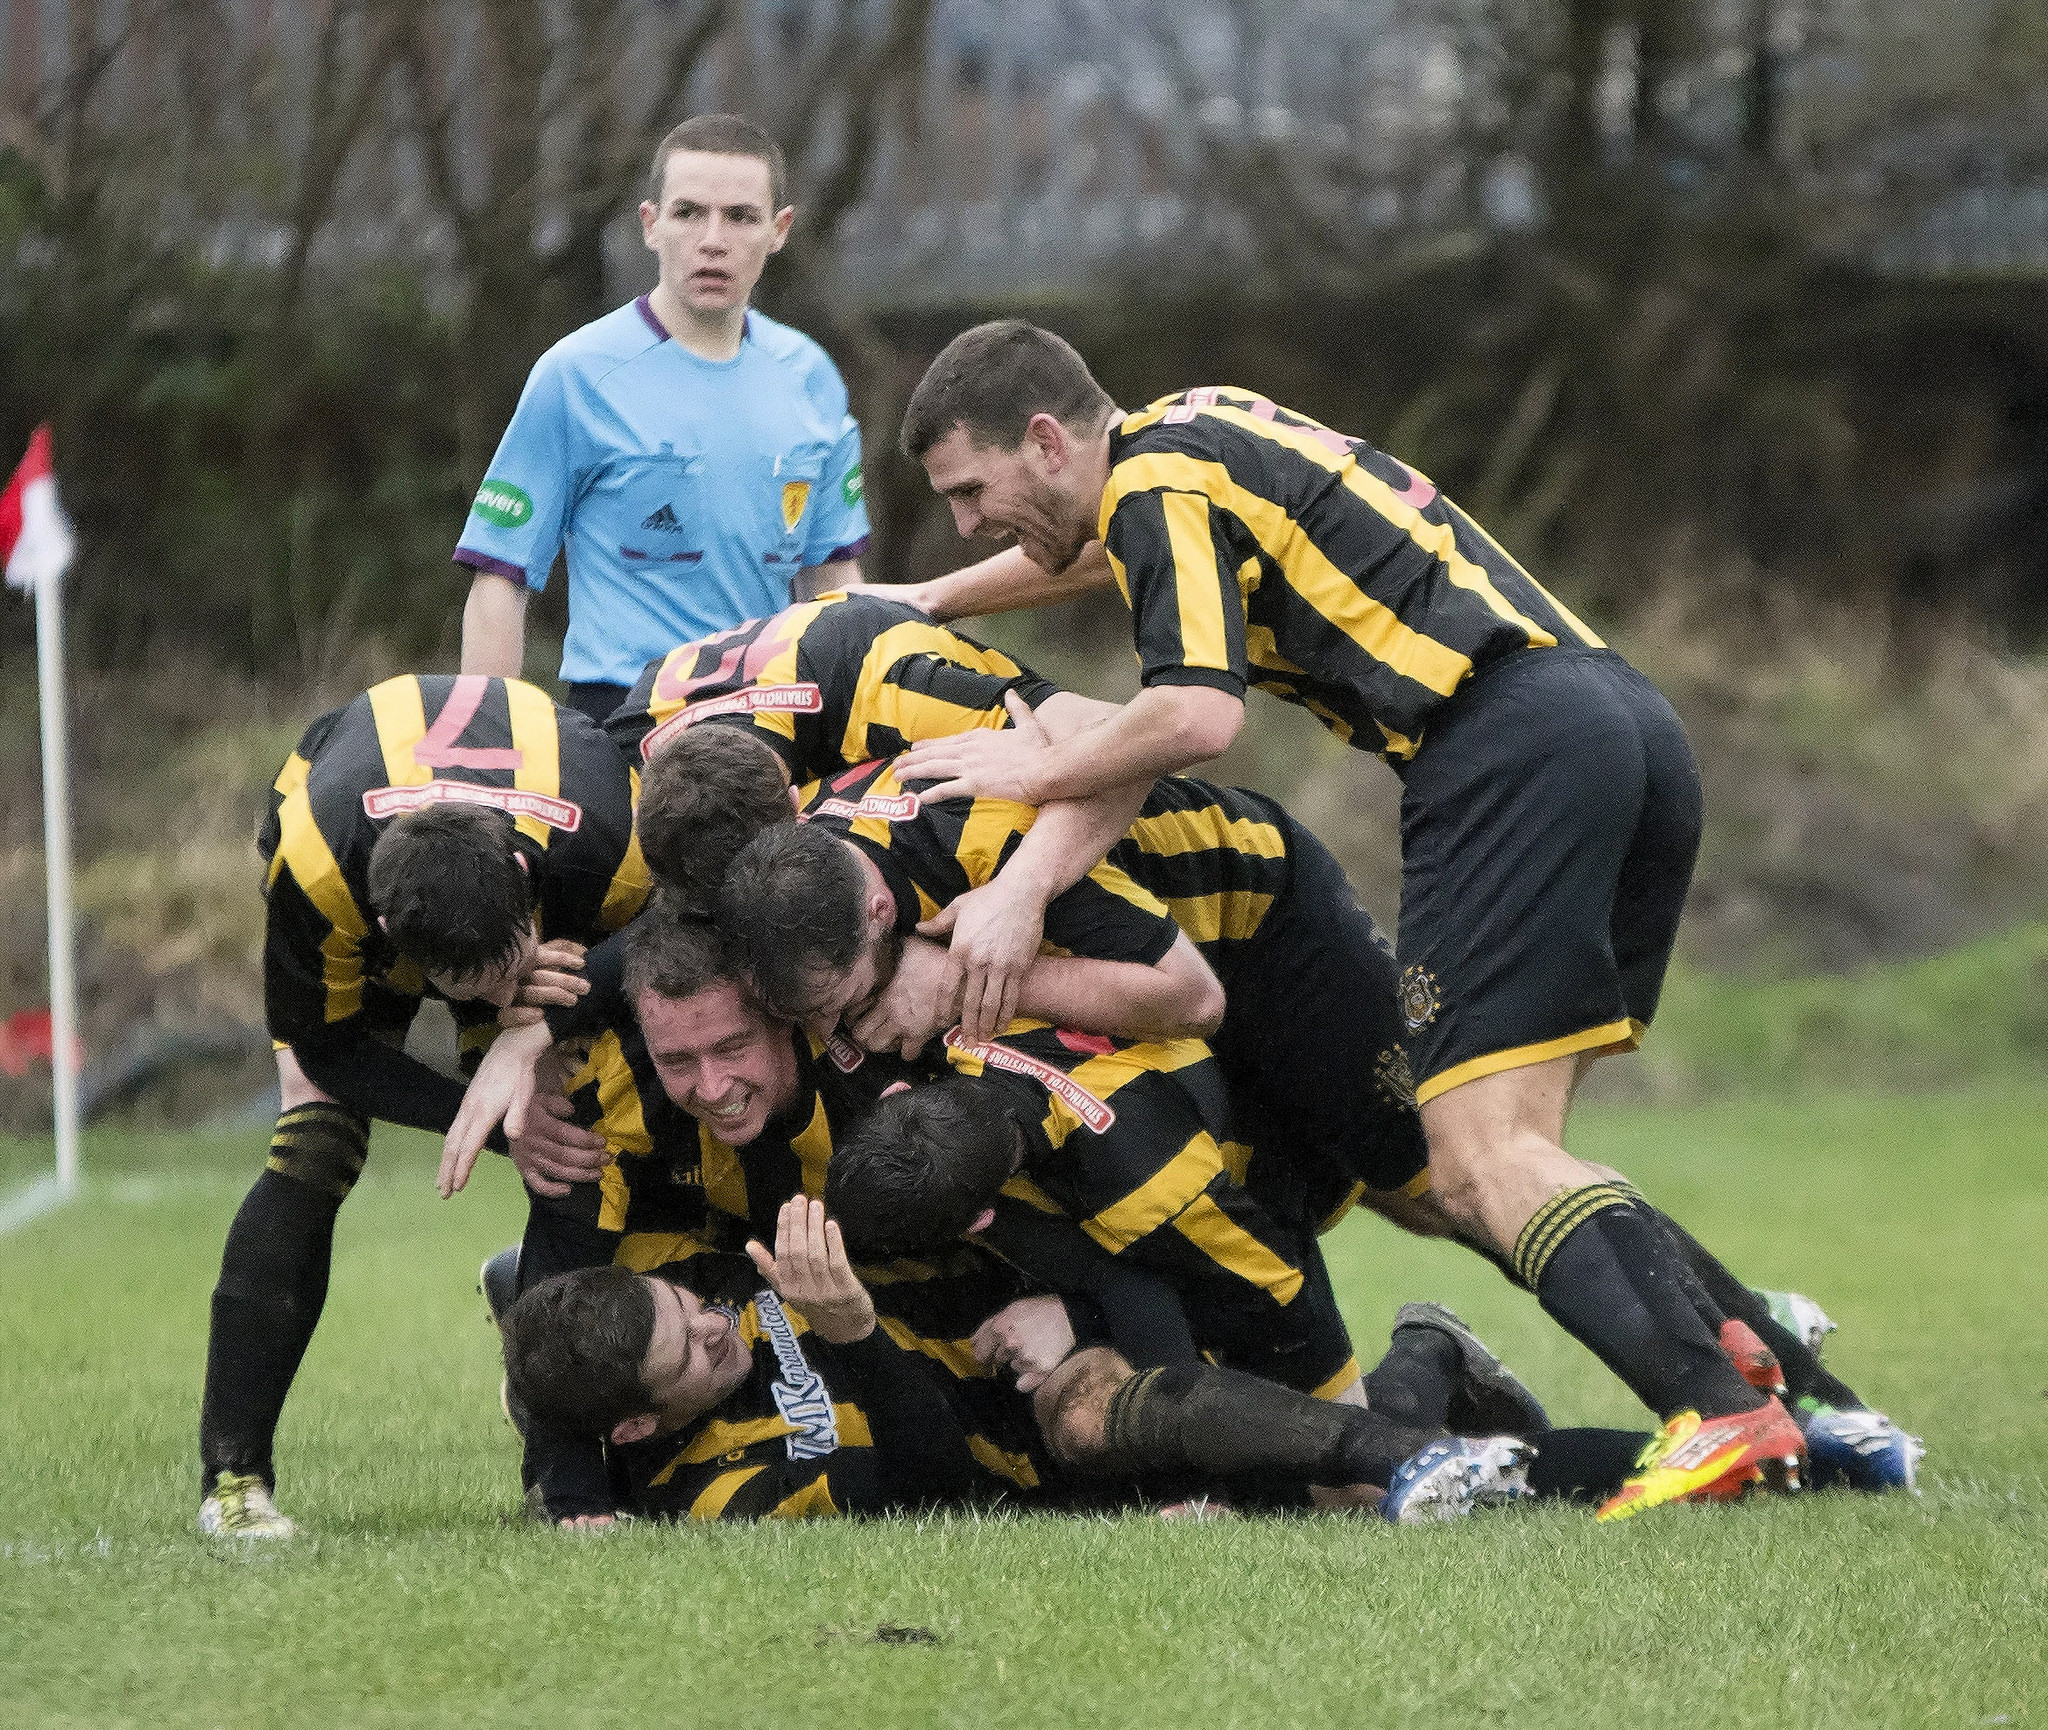 Buckie are set to take on the best of the West - Auchinleck Talbot. Picture courtesy of Stevie Doogan